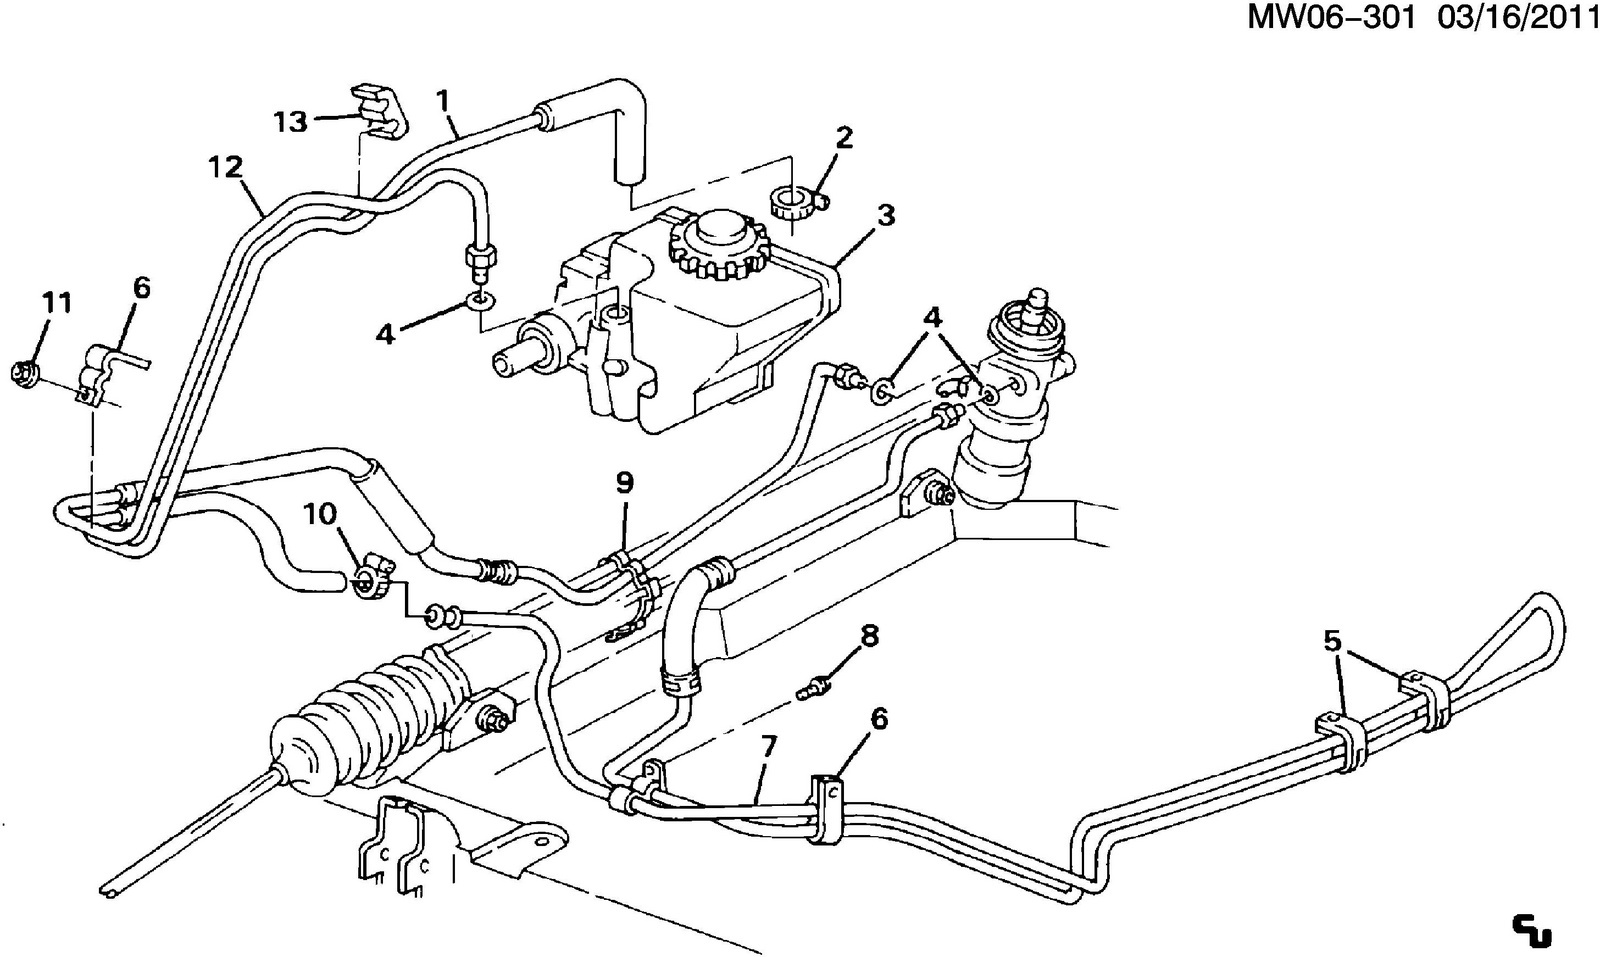 grand prix parts diagram emerson sensi thermostat wiring pontiac questions 1993 power steering pump